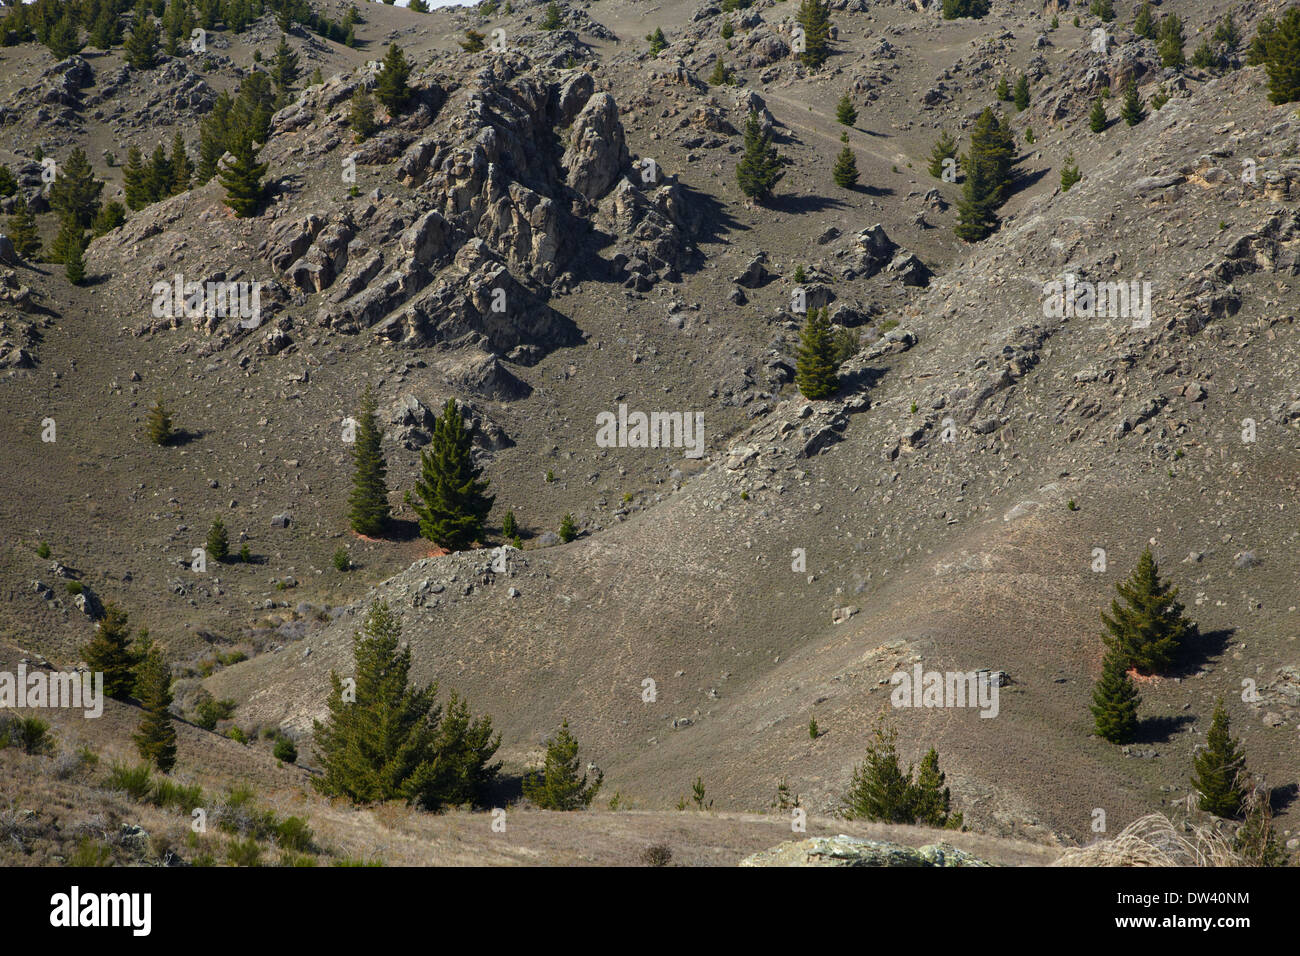 Wilding pines and schist rock tors, Alexandra, Central Otago, South Island, New Zealand - Stock Image